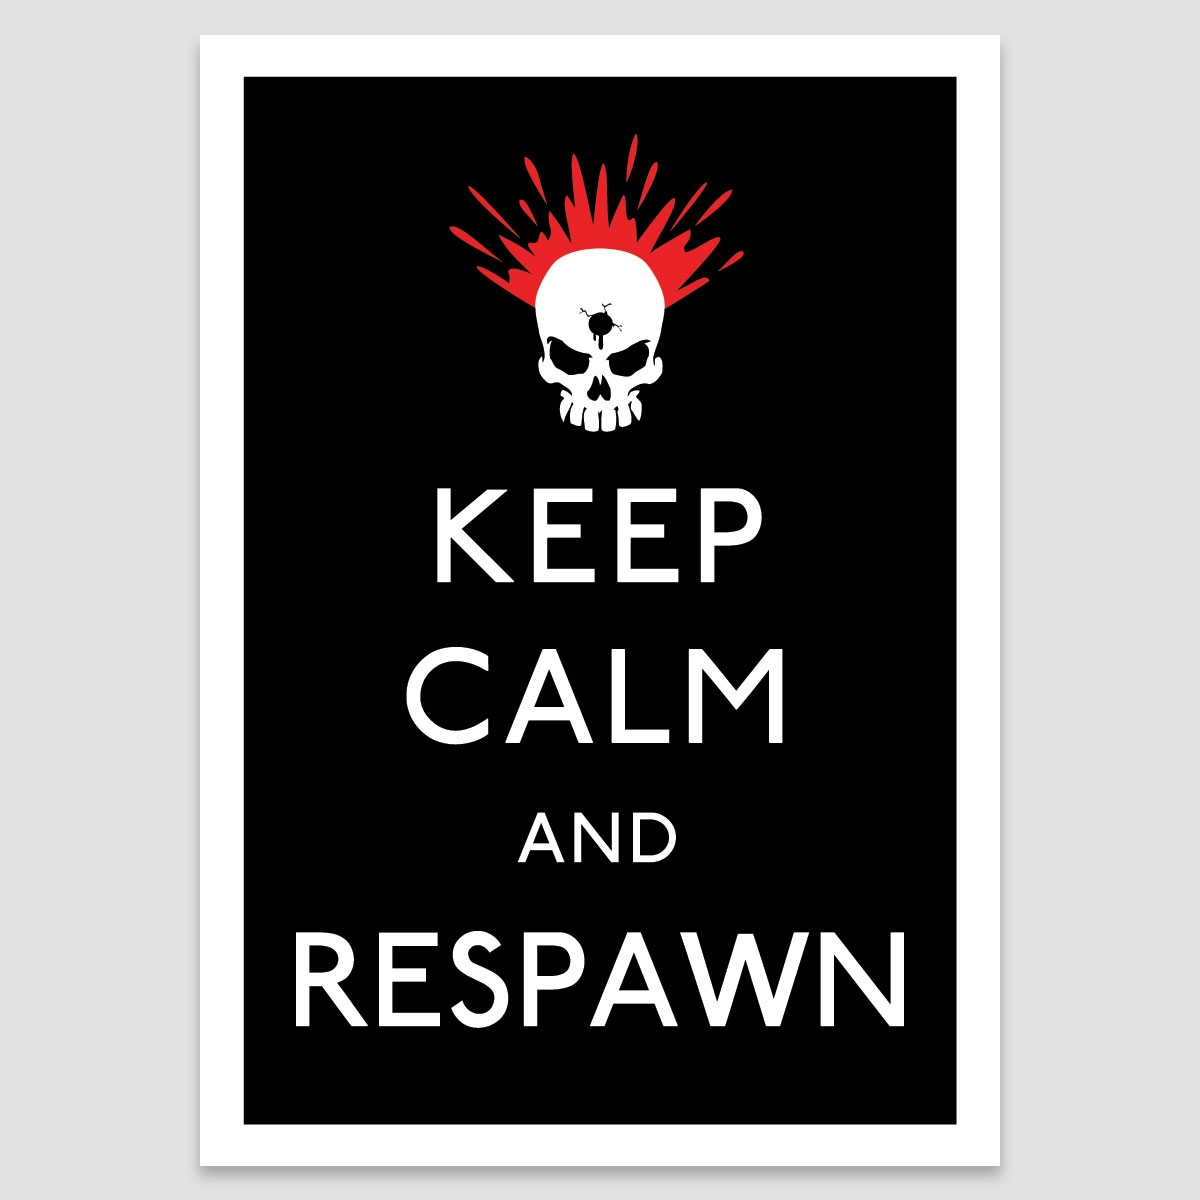 Photograph: A2 Print: Keep Calm & Respawn